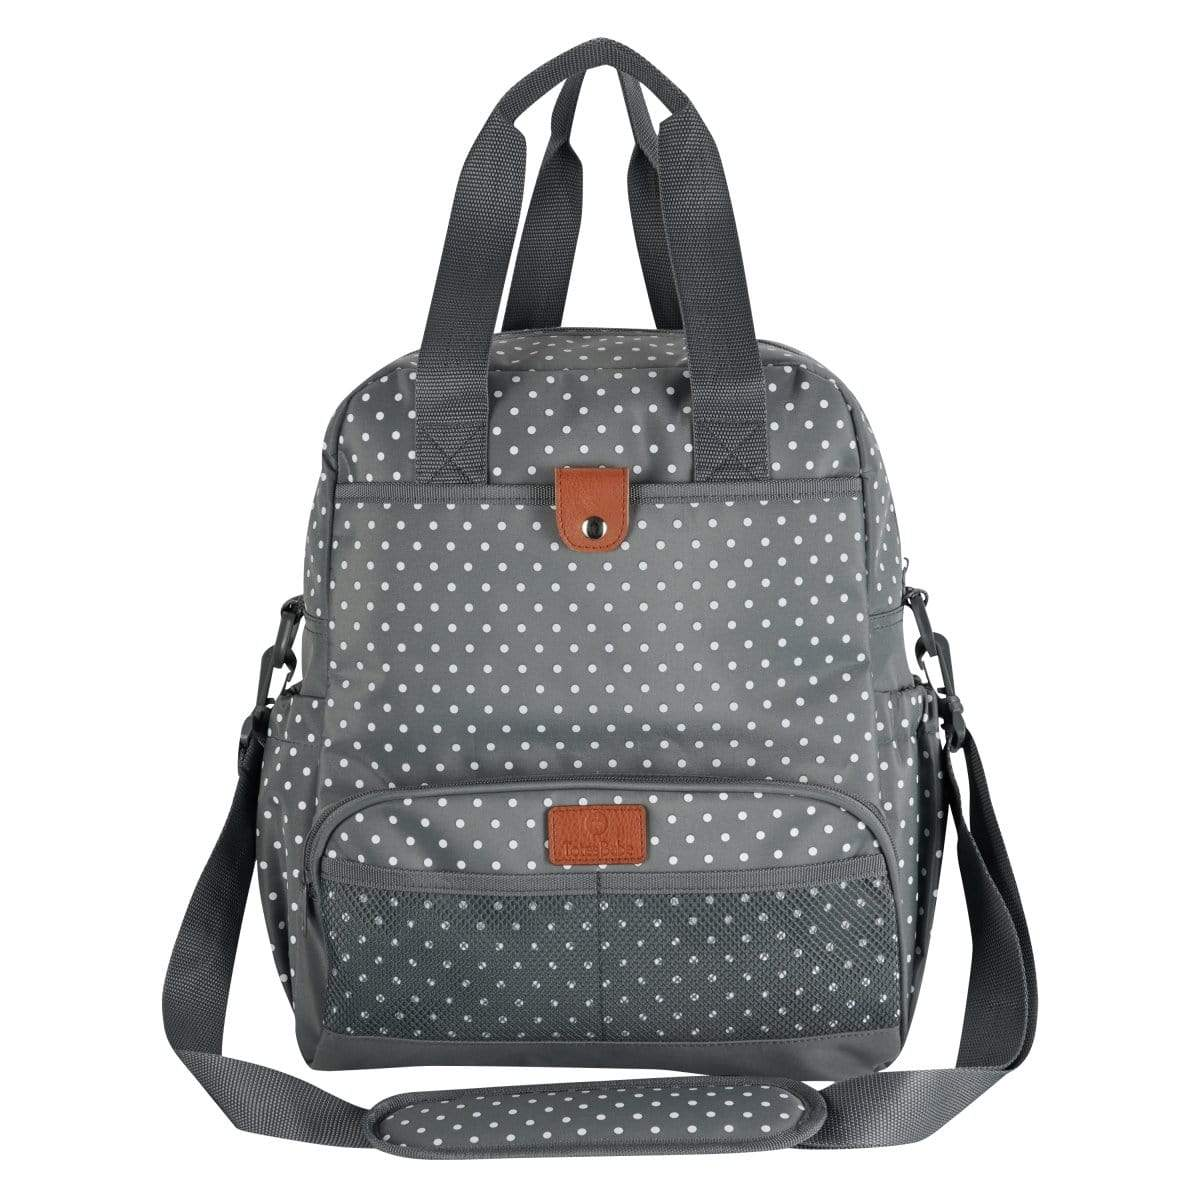 Totes Babe Dotty Series Diaper Backpack - Grey Snatcher Online Shopping South Africa